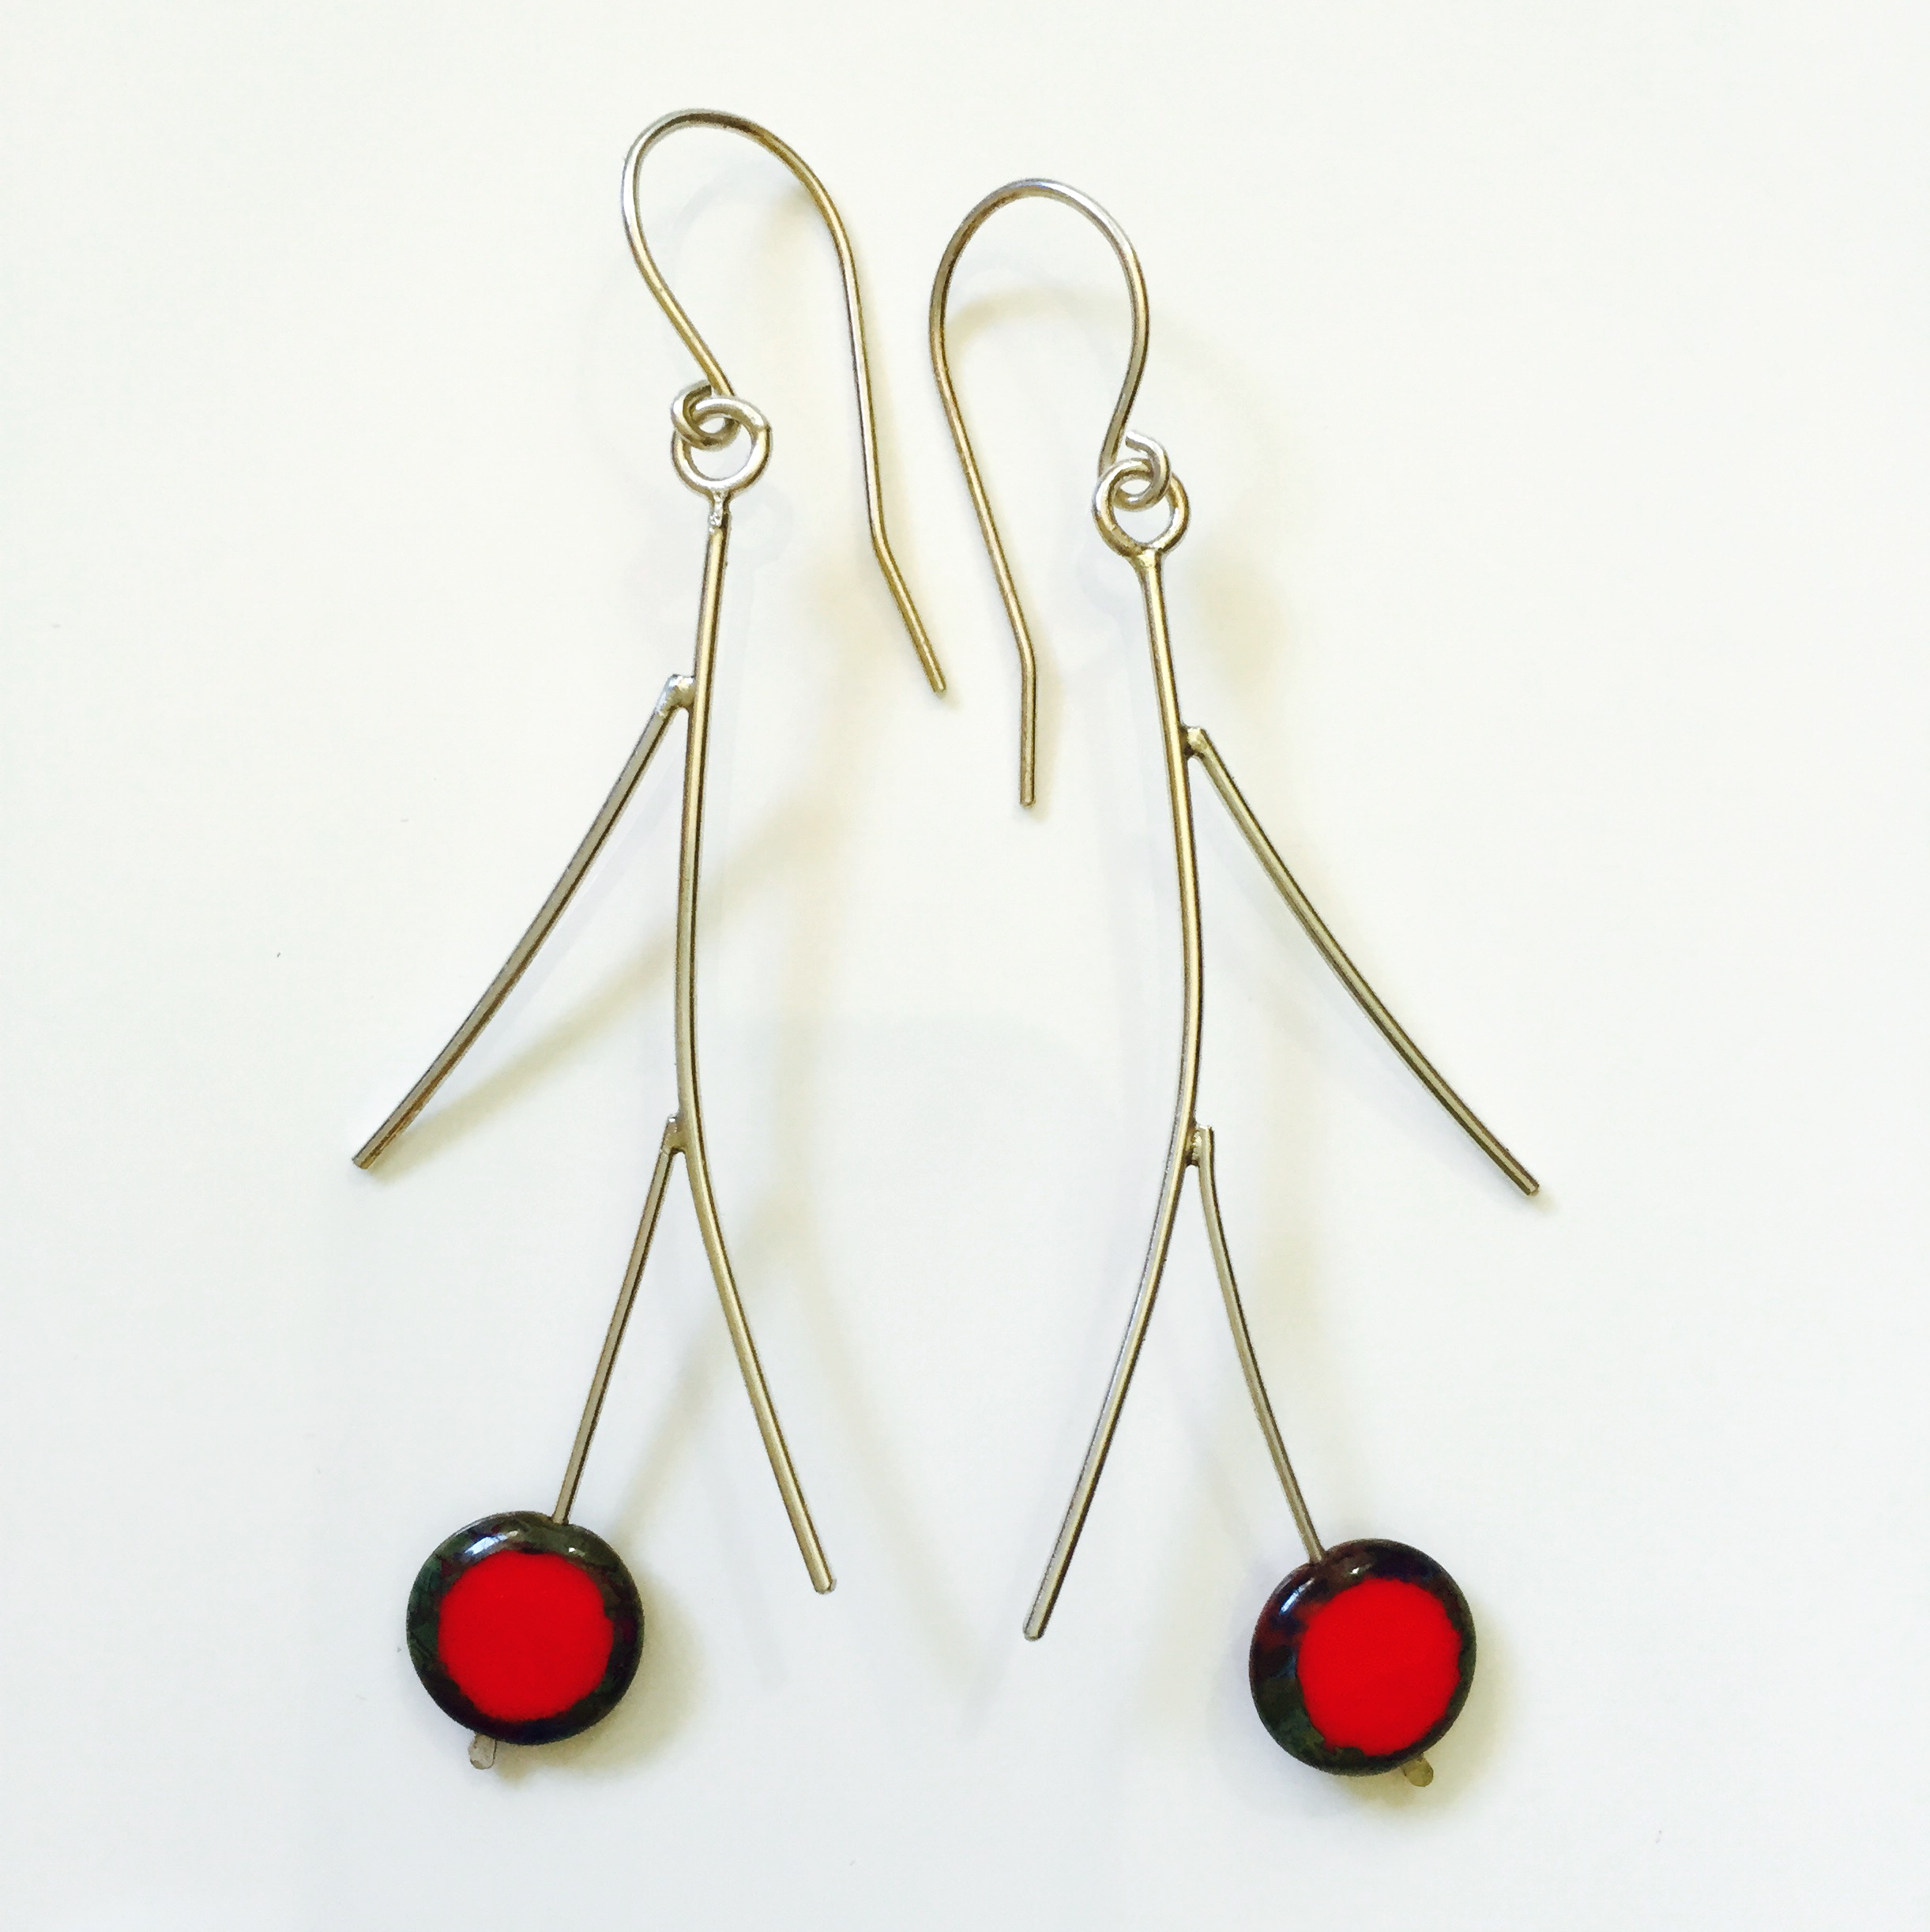 Sterling silver earrings with glass beads